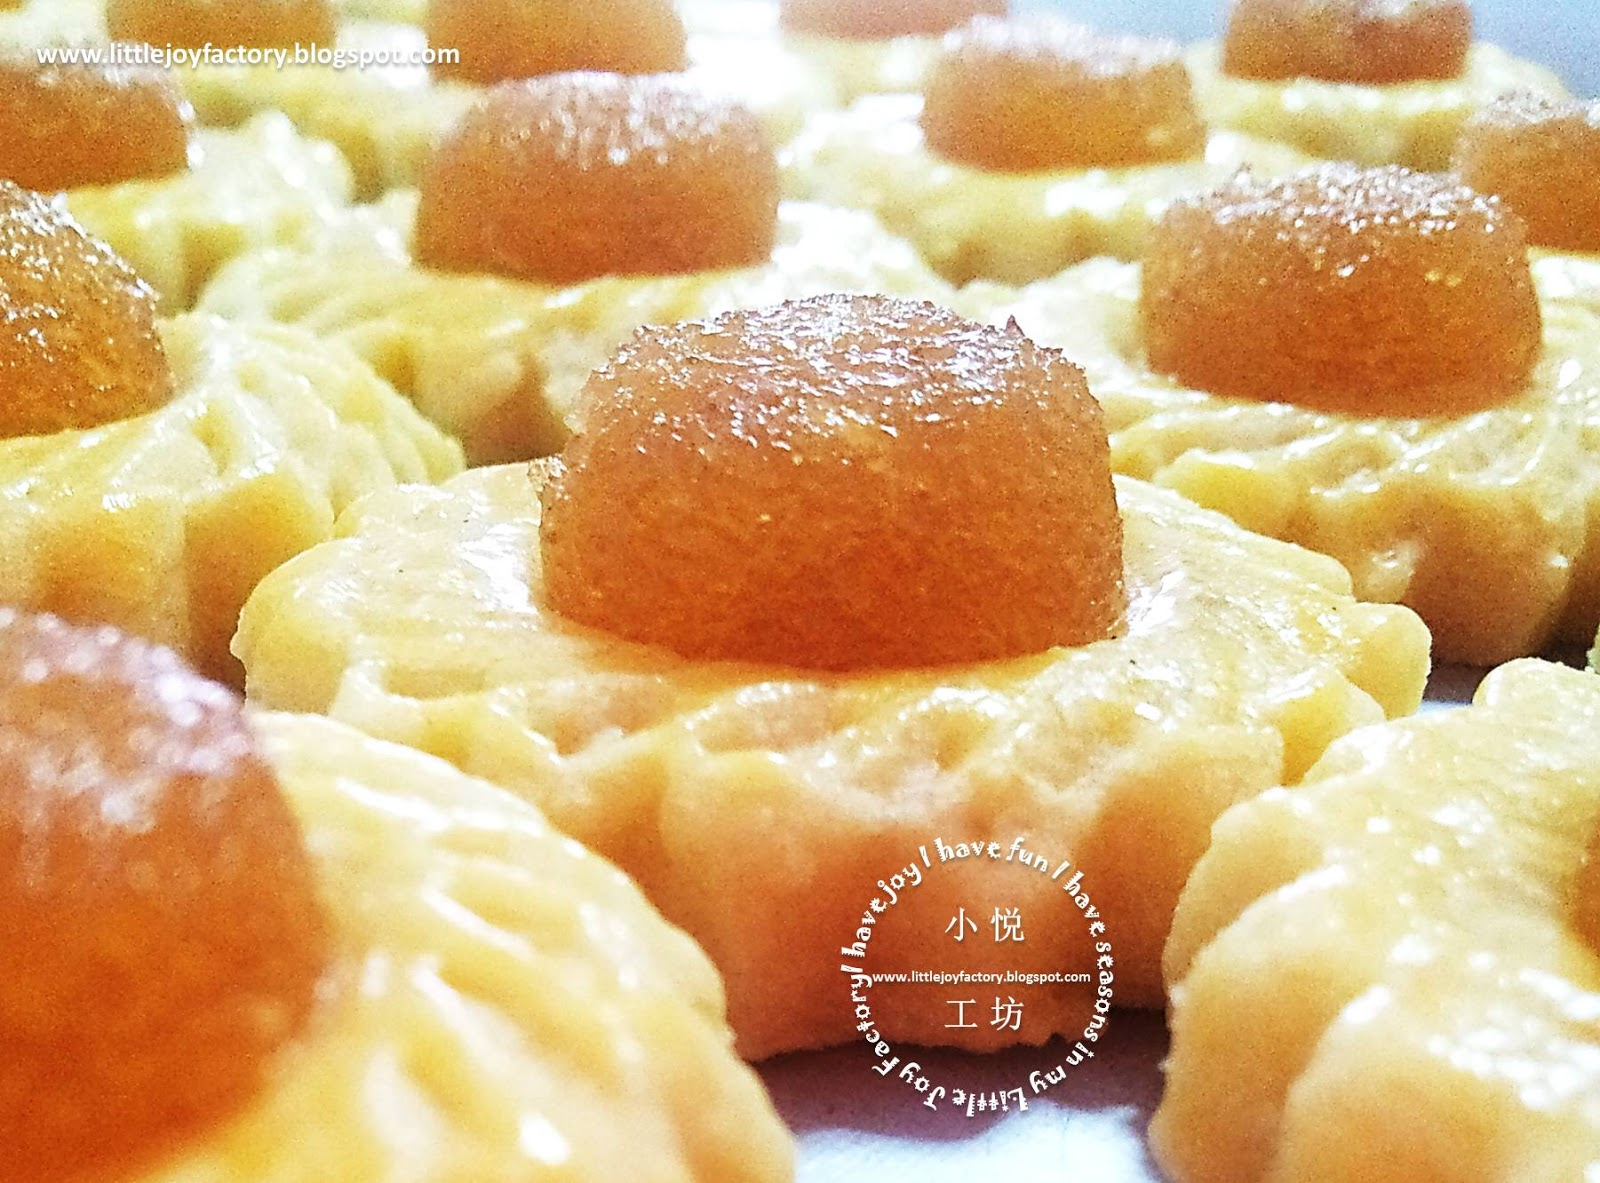 Pineapple tarts, (黄梨塔, Huáng lí tǎ)